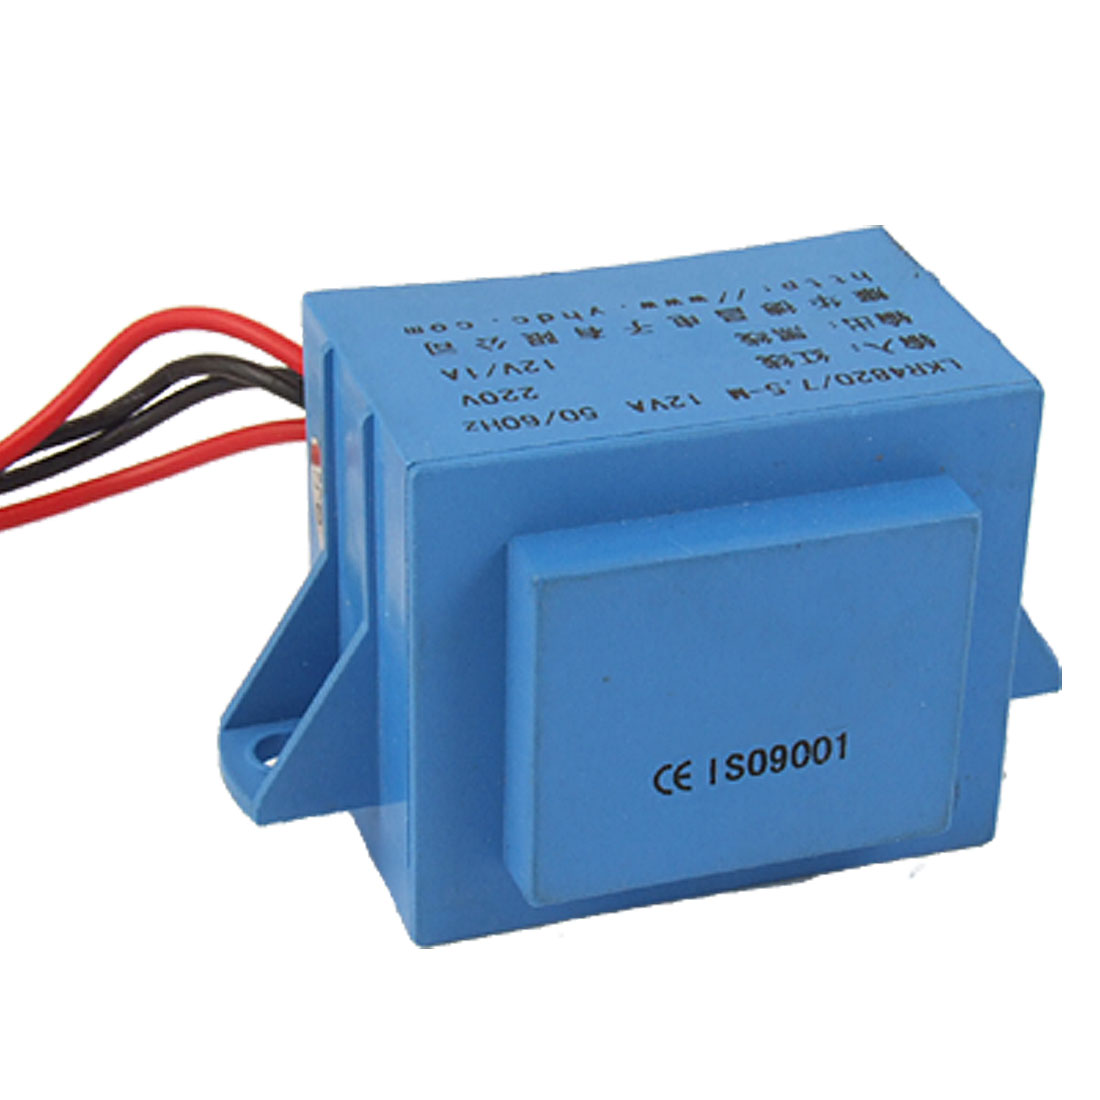 12VA Voltage Converter Transformer Blue LKR4820/7.5-M